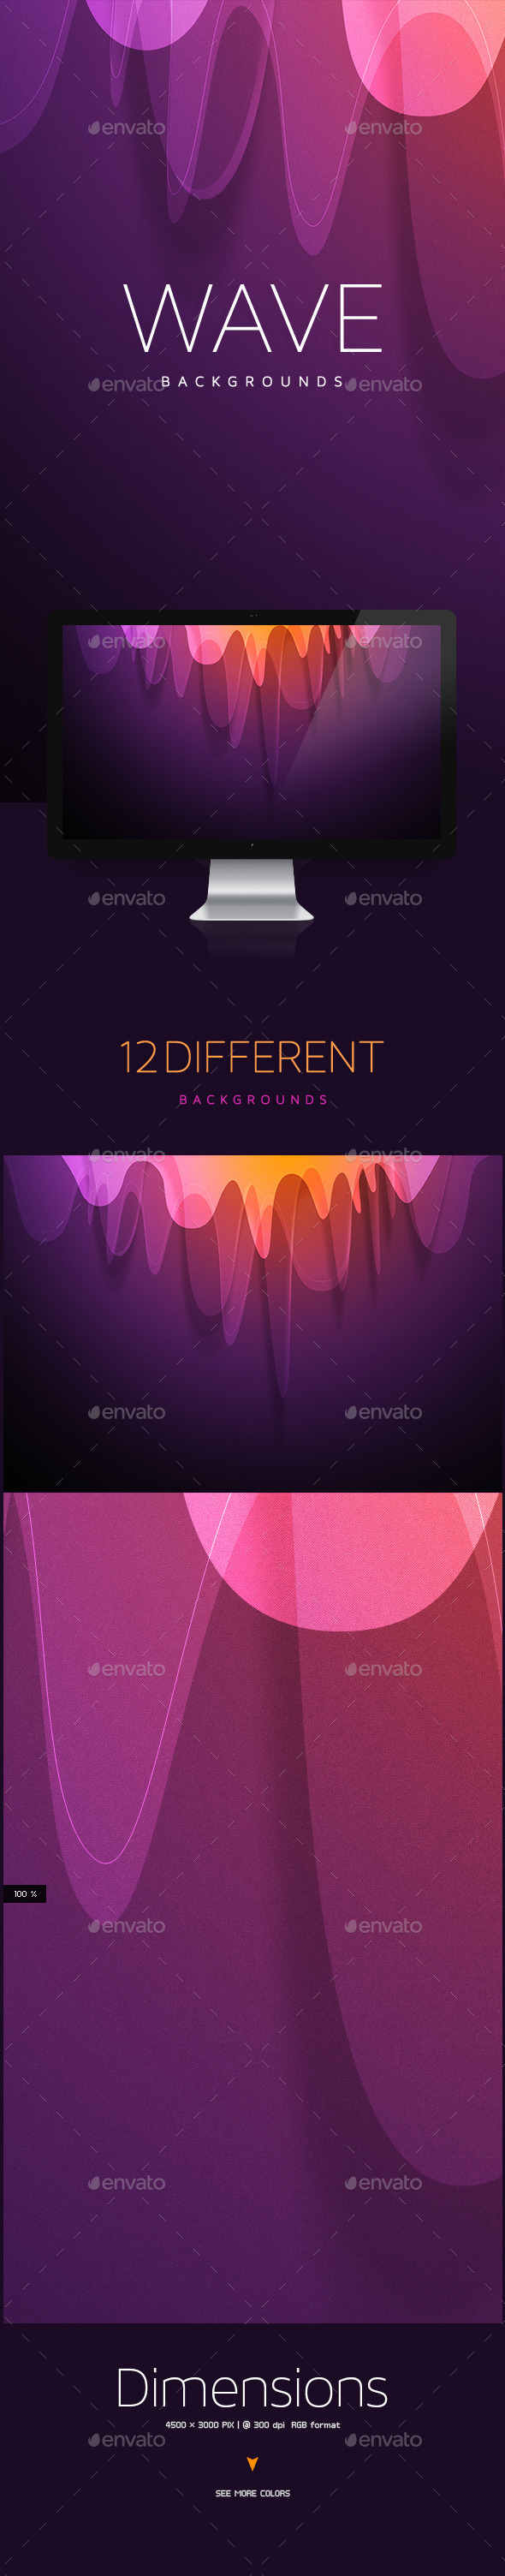 GraphicRiver Wave Abstract Backgrounds 10250574